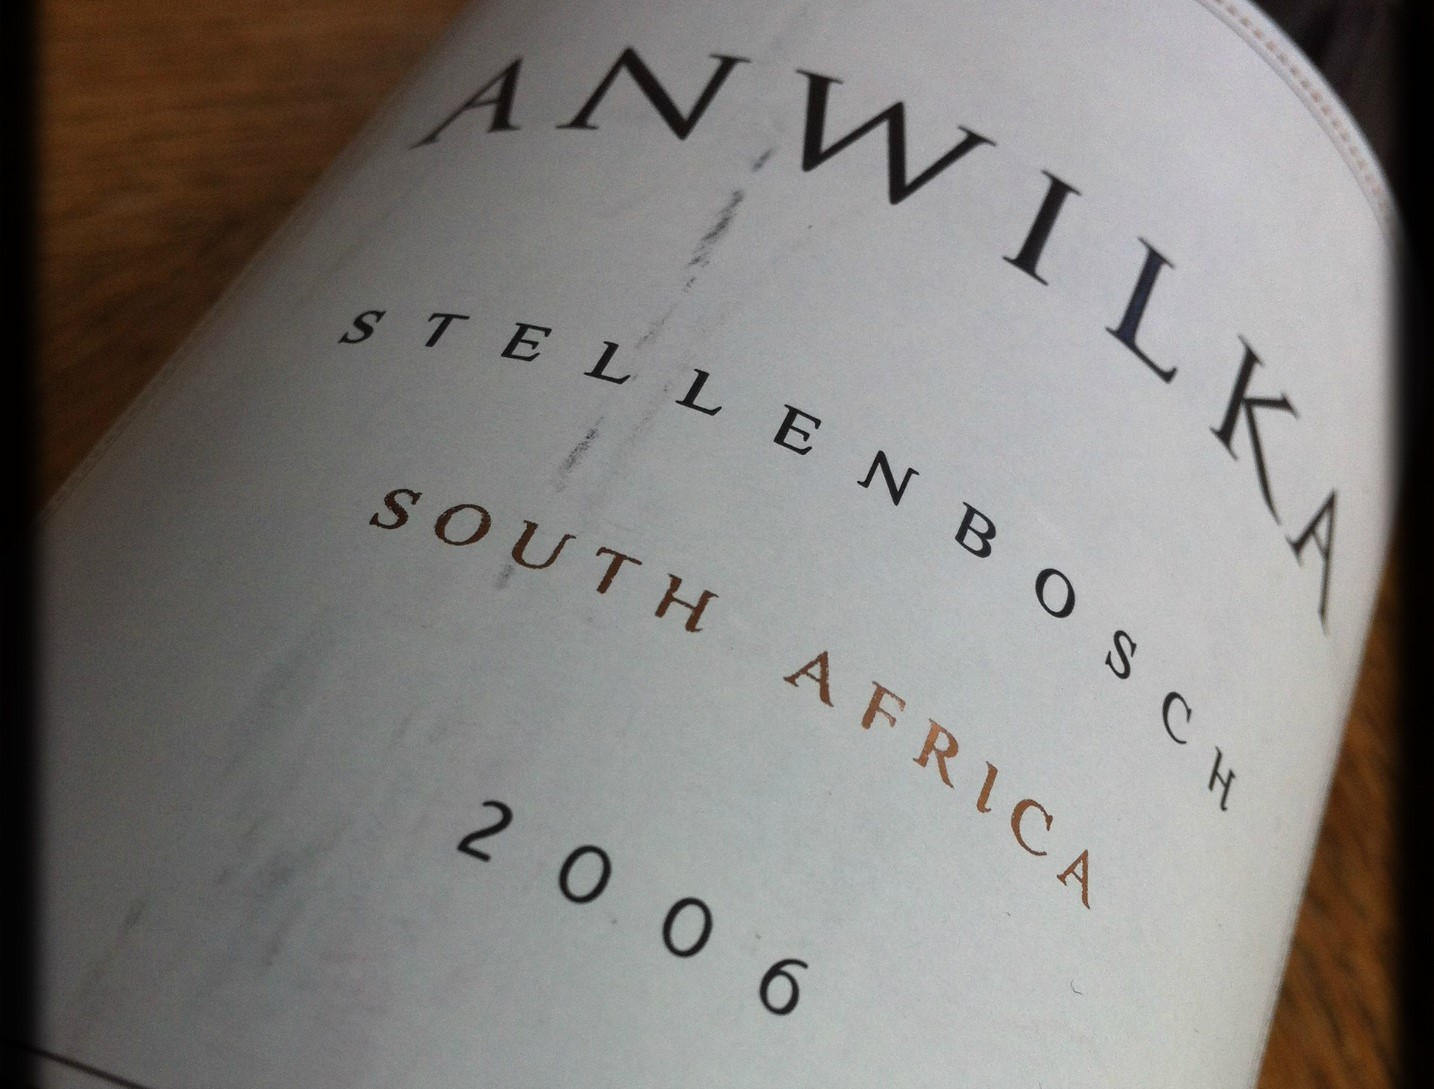 Anwilka, the best South African wine I've tasted by now